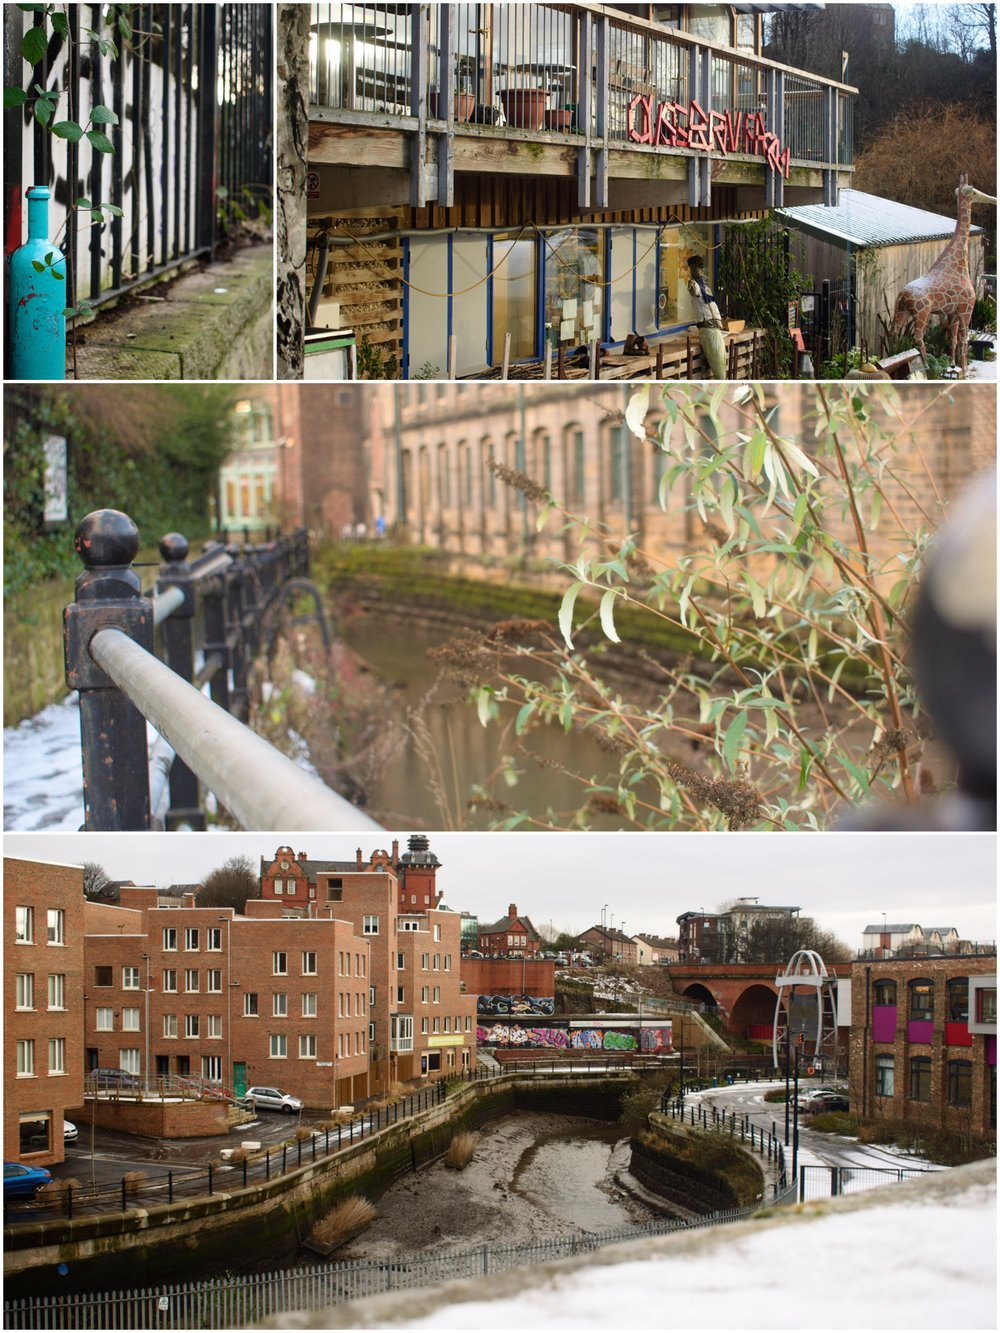 Sites in Ouseburn